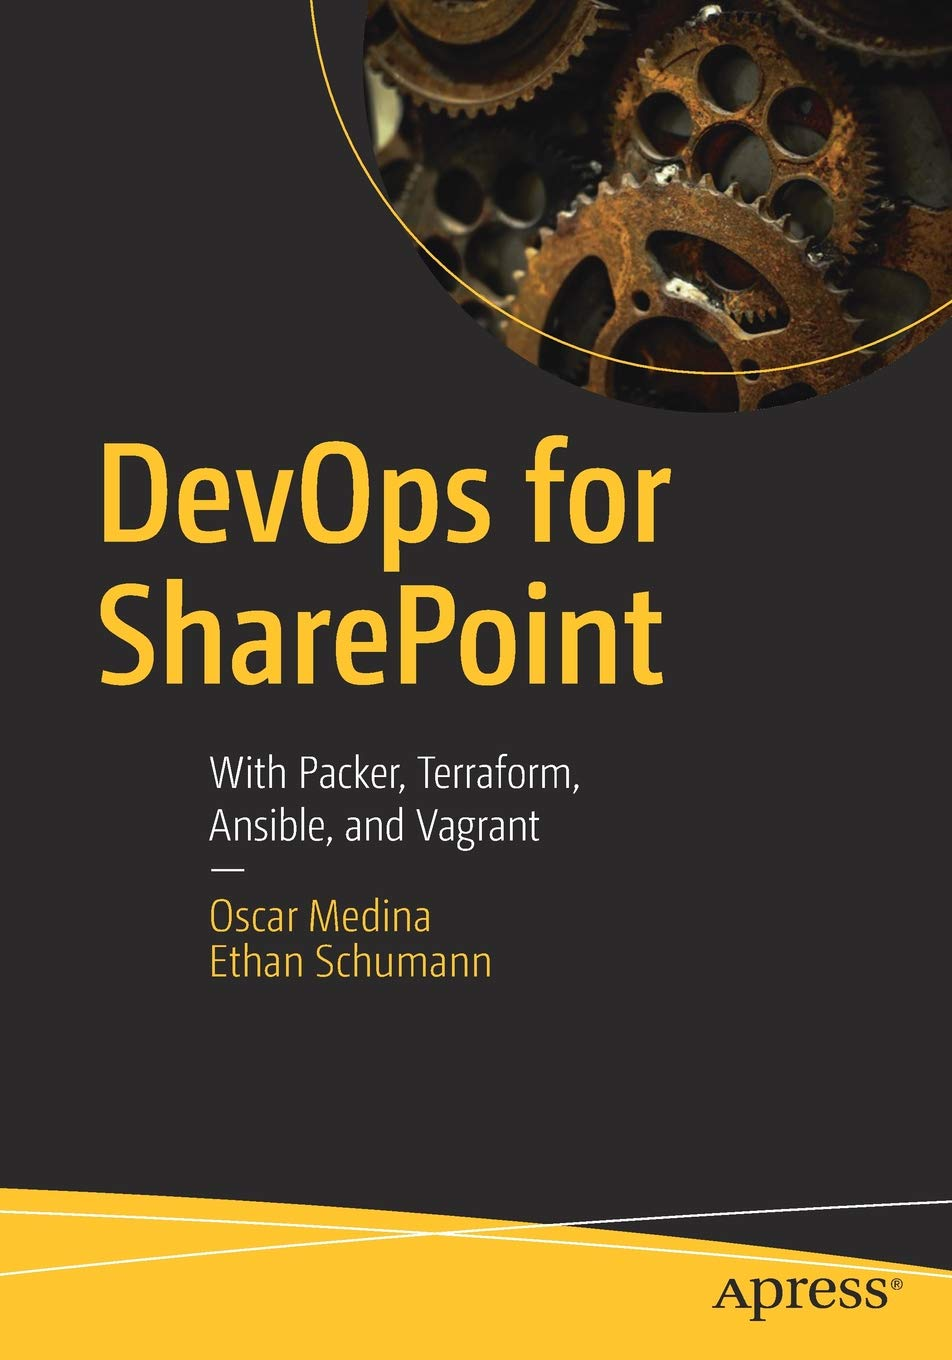 DevOps for SharePoint: With Packer, Terraform, Ansible, and